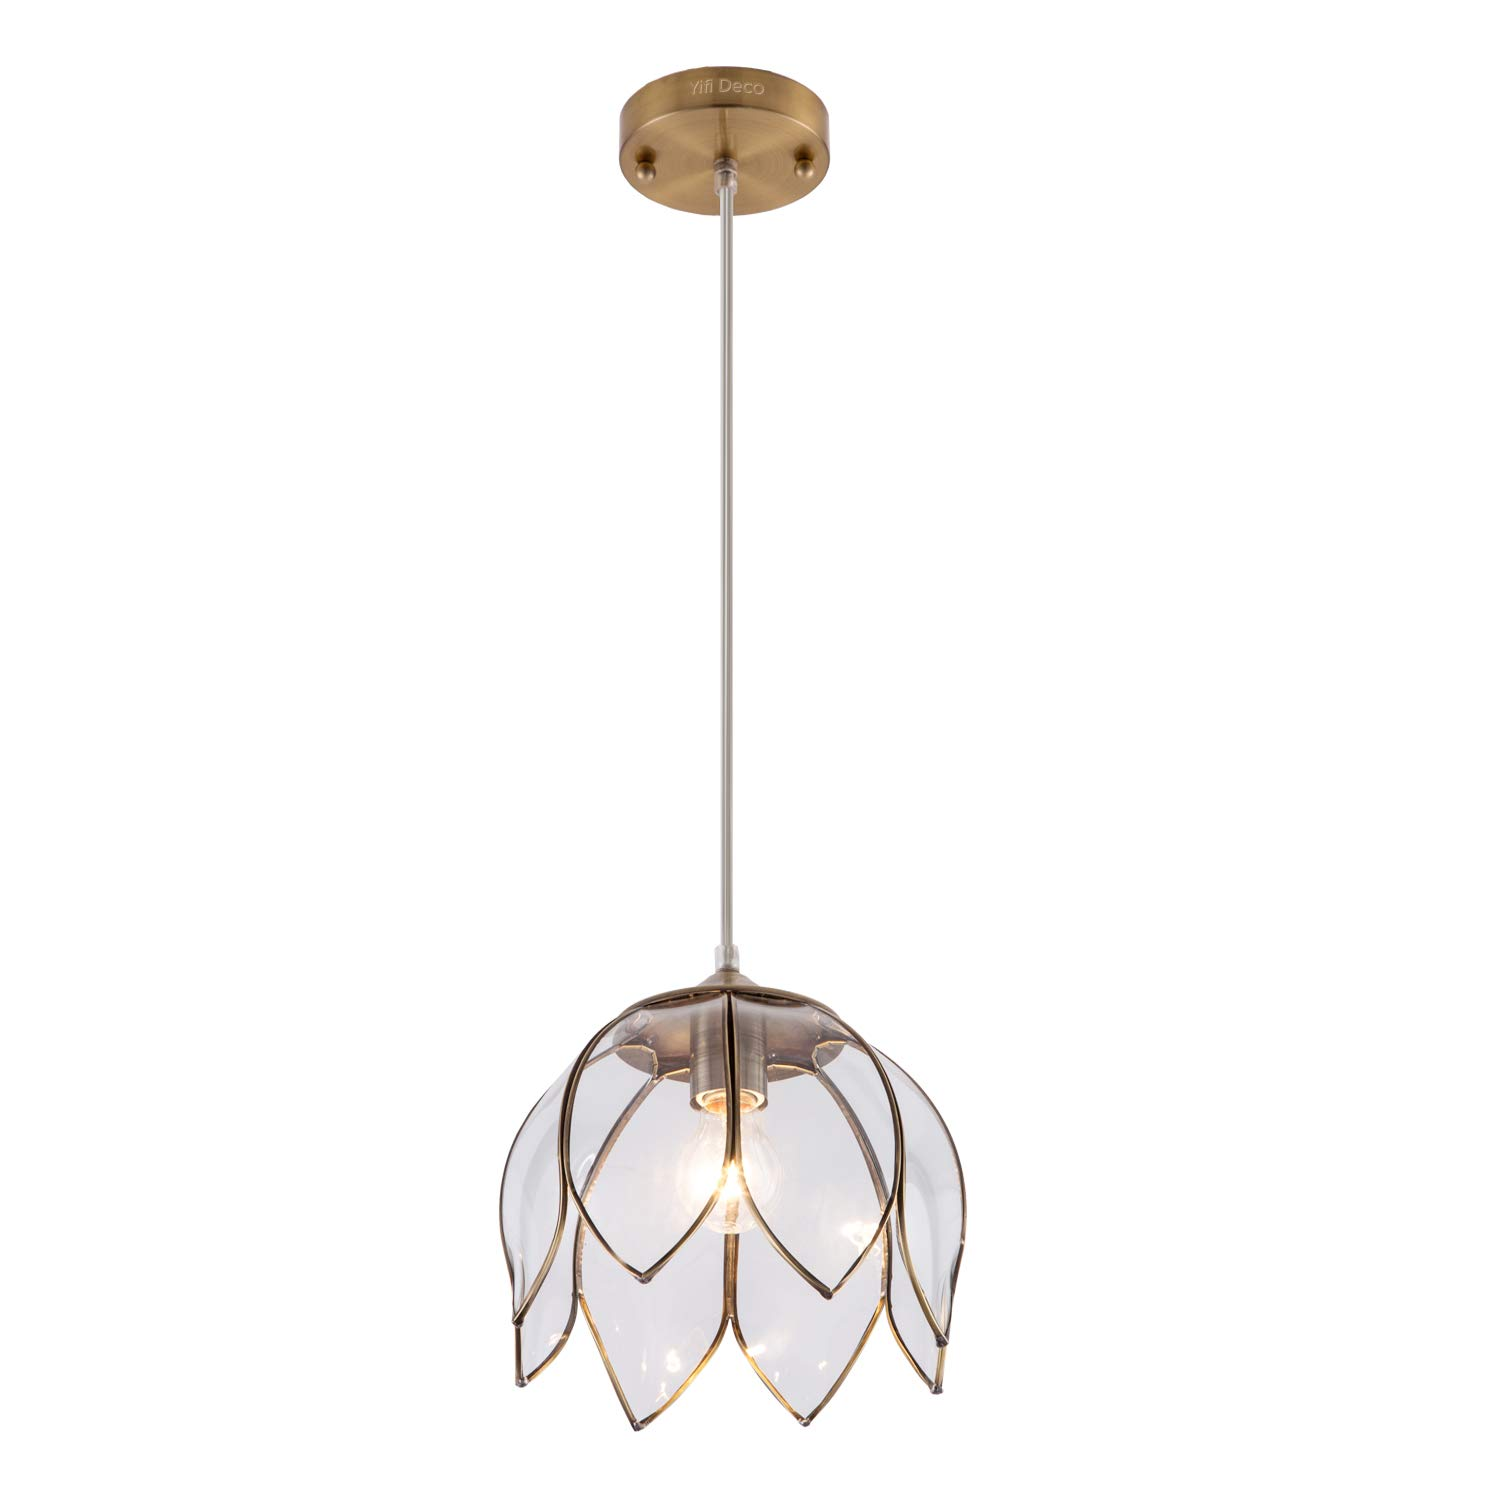 YIFI Deco Brass Pendant Light Lotus Vintage Glass Adjustable Ceiling Pendant Light for Kitchen Island Dining Room Bedroom Living Room, Clear